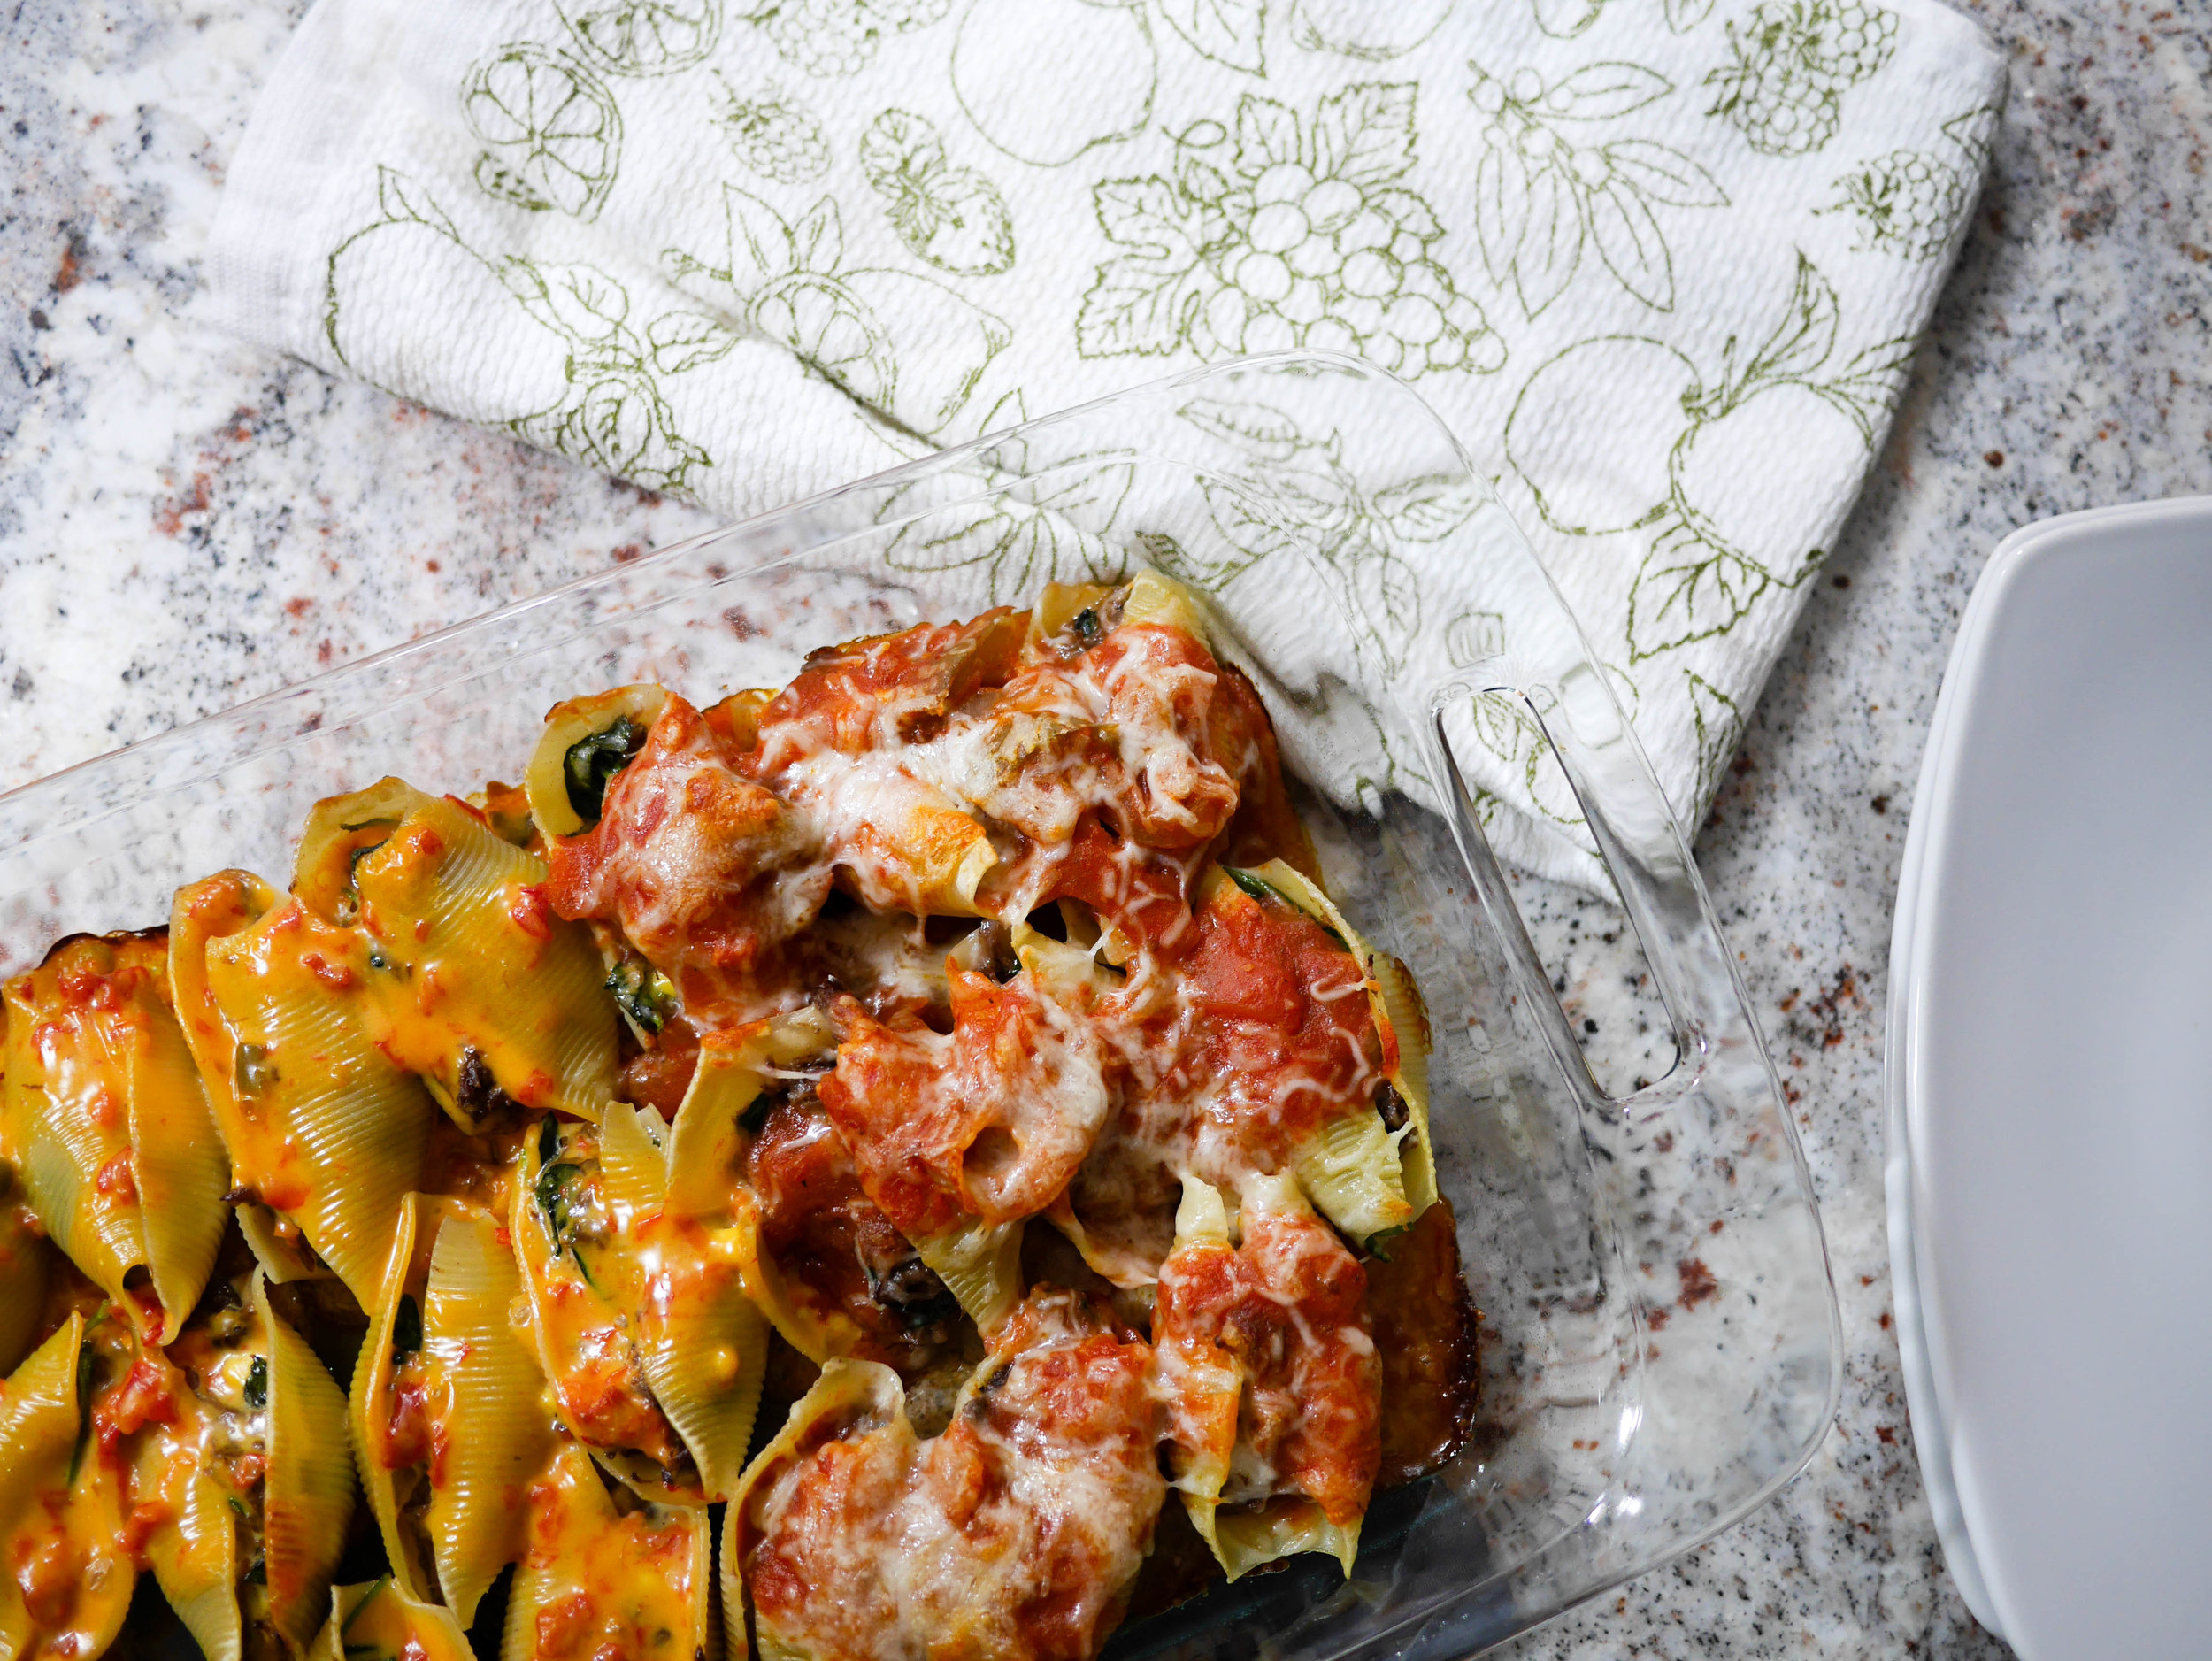 Rethink your leftovers with stuffed shells. A surprising mixture of leftovers and household staples results in something simple and delicious.